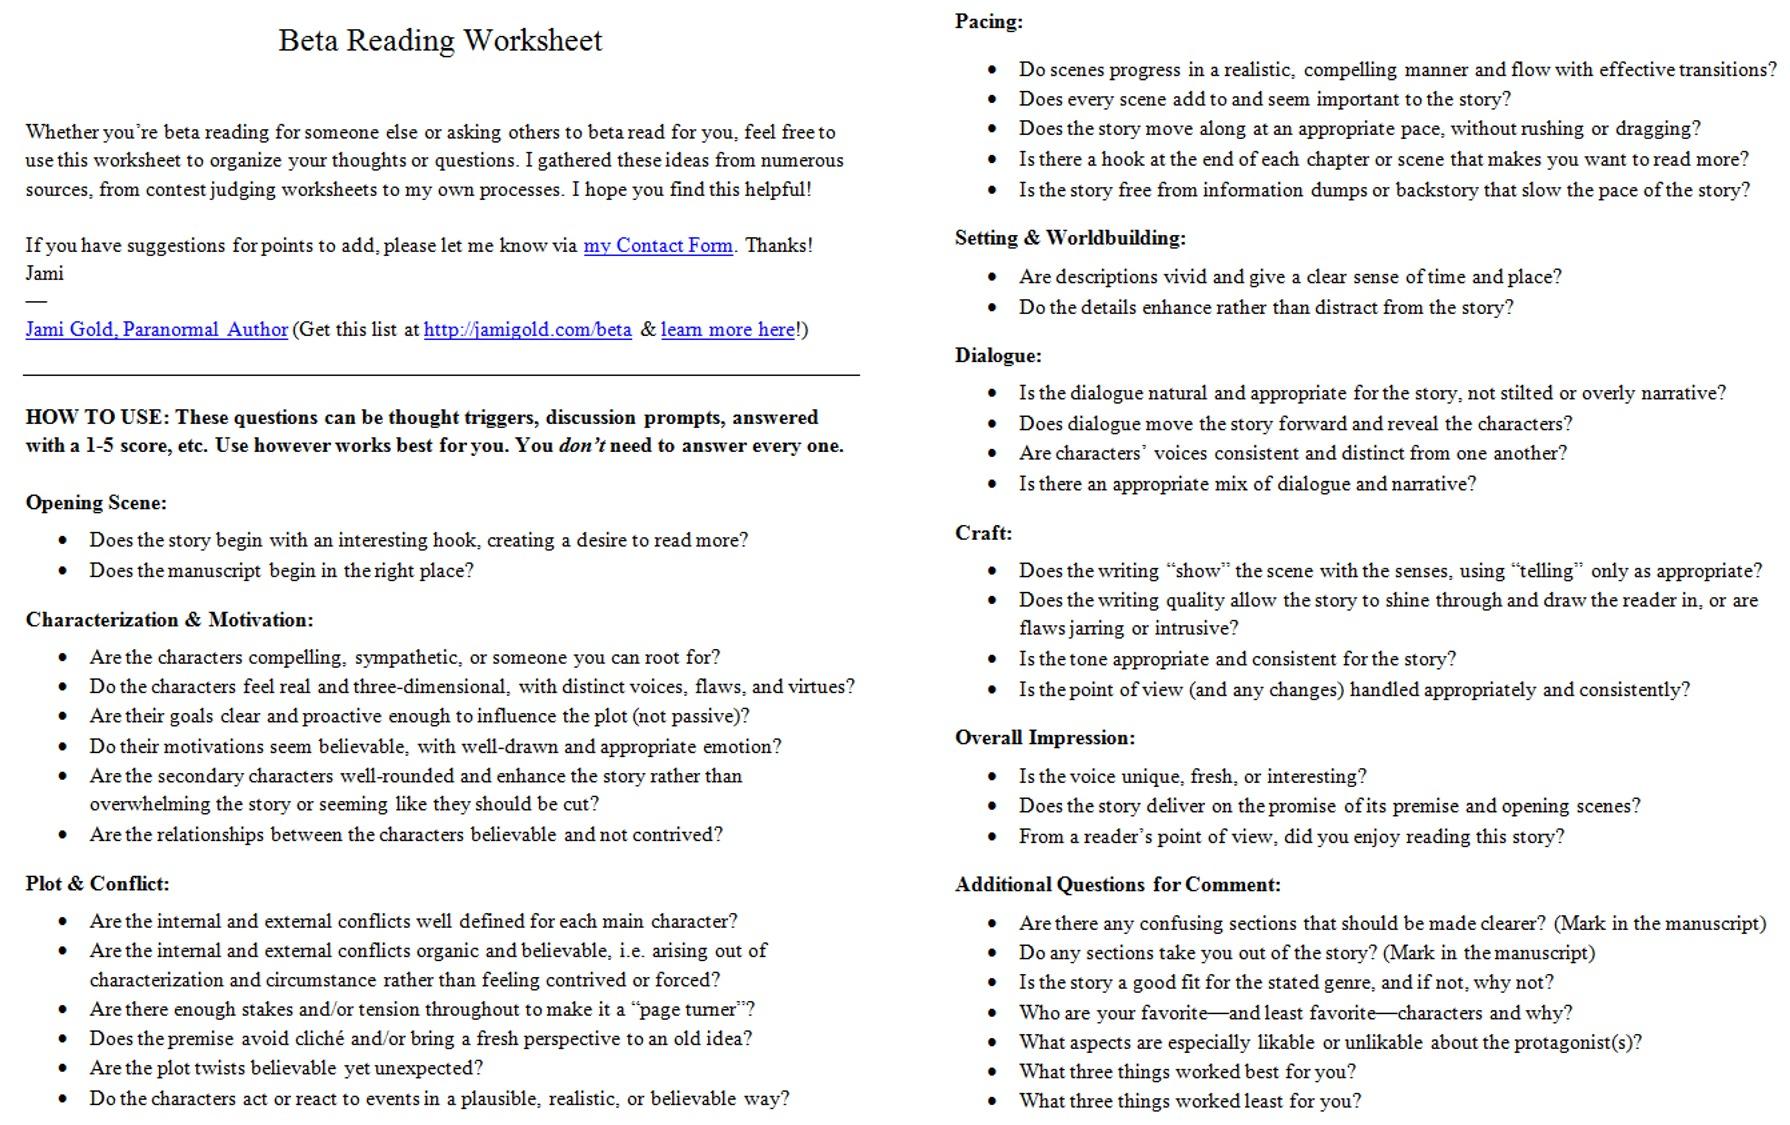 Weirdmailus  Picturesque Worksheets For Writers  Jami Gold Paranormal Author With Goodlooking Screen Shot Of The Twopage Beta Reading Worksheet With Attractive Budget Worksheet Printable Template Also  And  Digit Subtraction With Regrouping Worksheets In Addition Pythagoras Theorem Word Problems Worksheet And Literacy Worksheet As Well As Synonyms Worksheet For Grade  Additionally Nouns Worksheet For Grade  From Jamigoldcom With Weirdmailus  Goodlooking Worksheets For Writers  Jami Gold Paranormal Author With Attractive Screen Shot Of The Twopage Beta Reading Worksheet And Picturesque Budget Worksheet Printable Template Also  And  Digit Subtraction With Regrouping Worksheets In Addition Pythagoras Theorem Word Problems Worksheet From Jamigoldcom